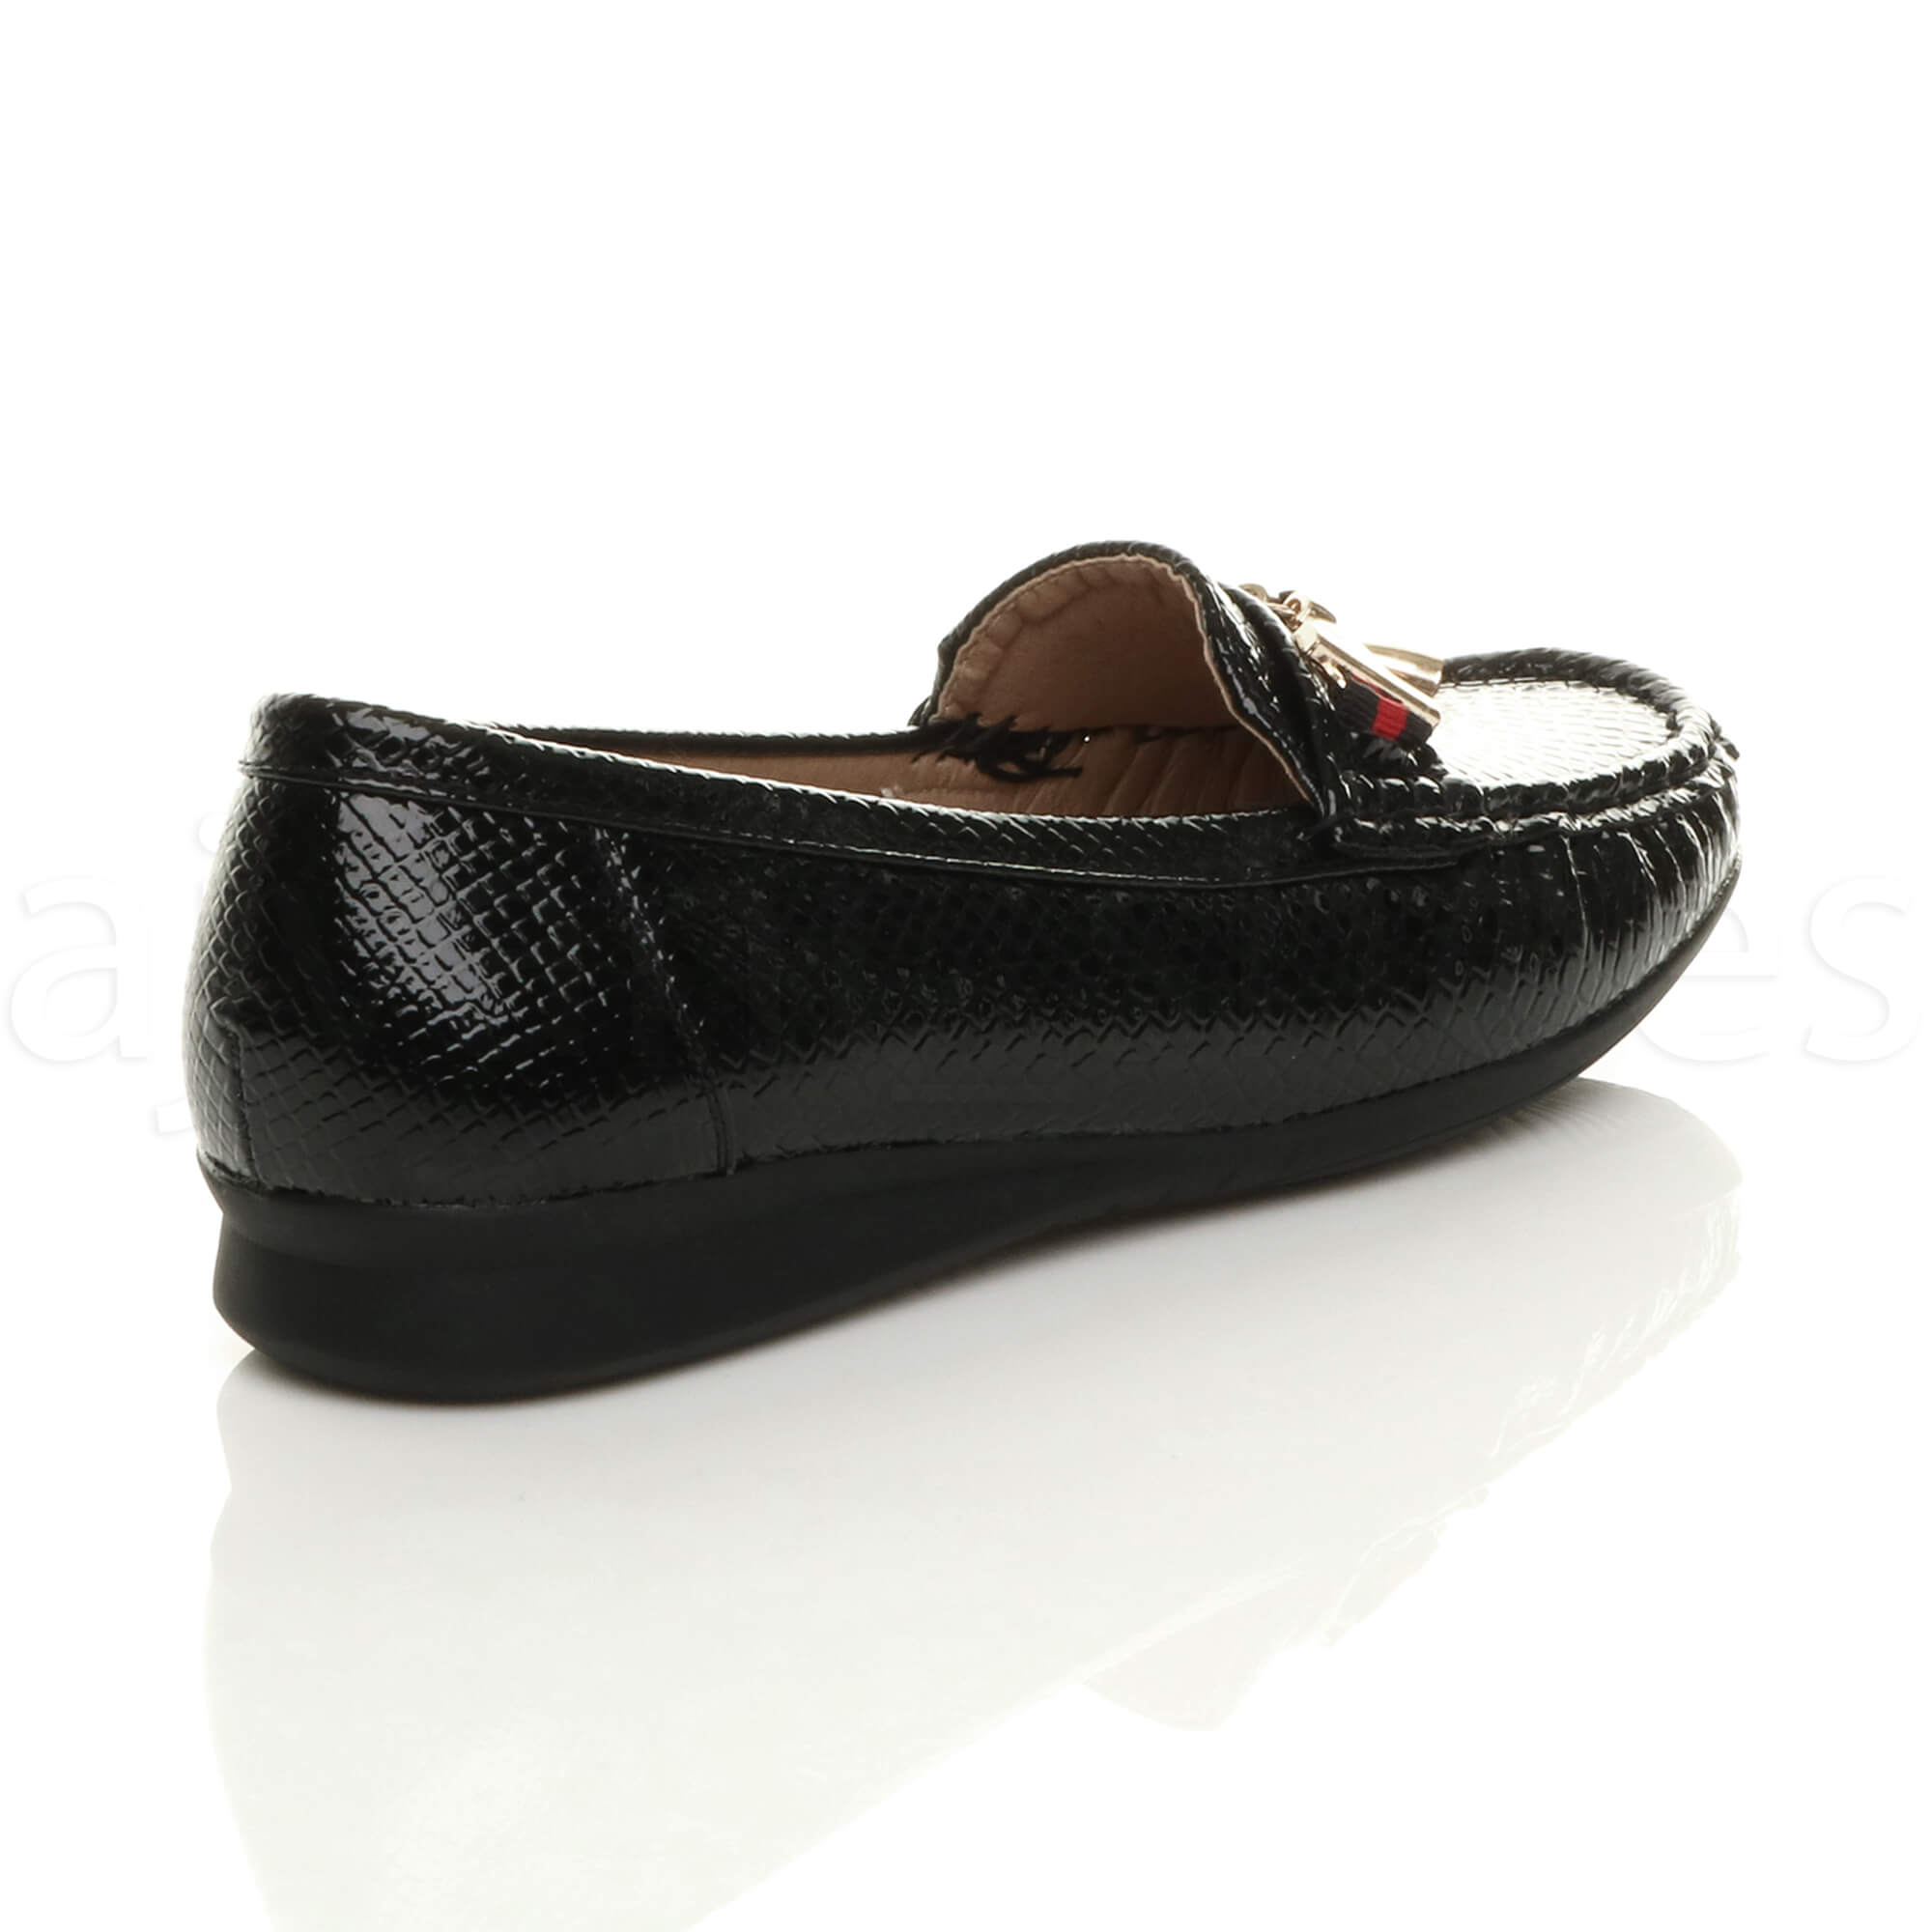 WOMENS-LADIES-LOW-HEEL-WEDGE-LEATHER-TASSEL-LOAFERS-COMFORT-MOCCASINS-SHOES-SIZE thumbnail 21